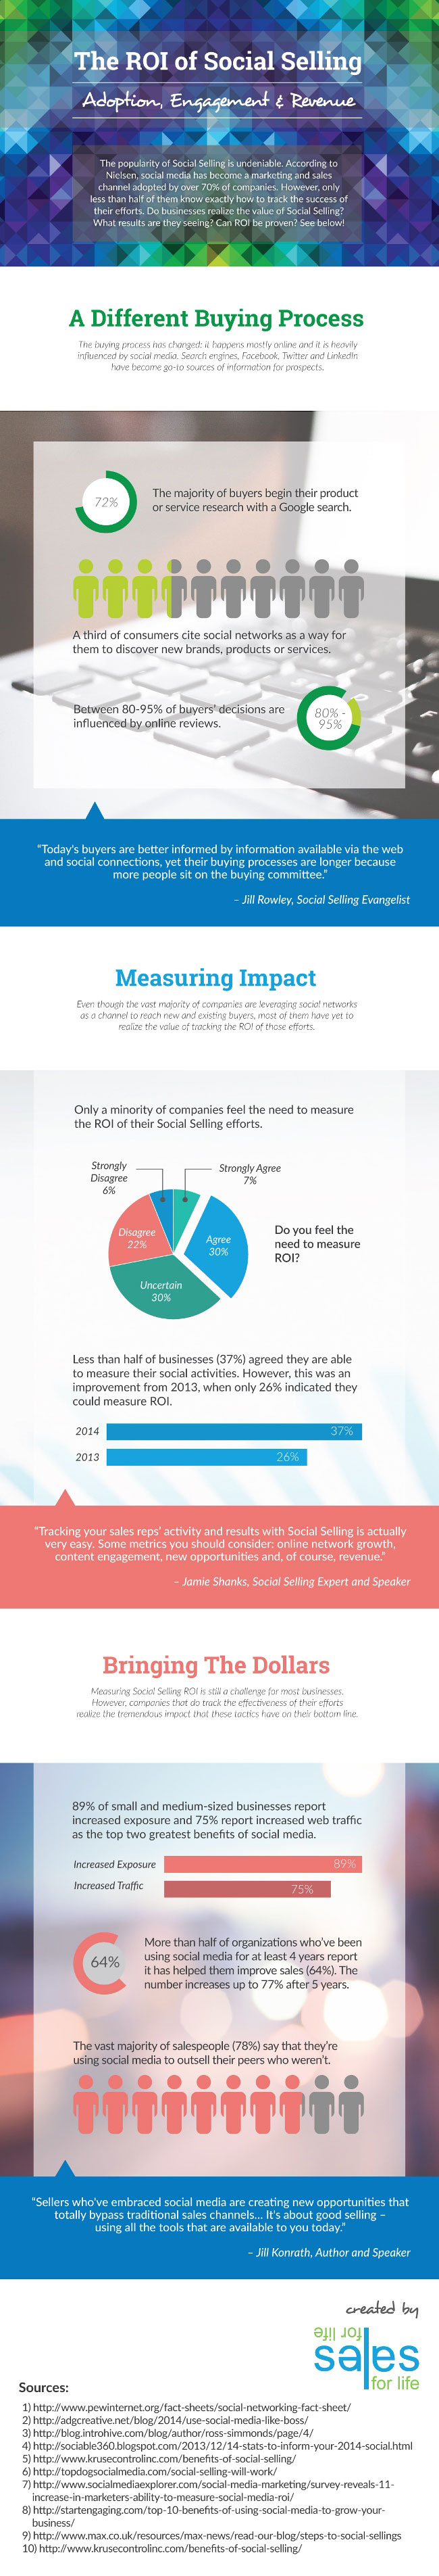 What is the ROI of Social Media? #Infographic